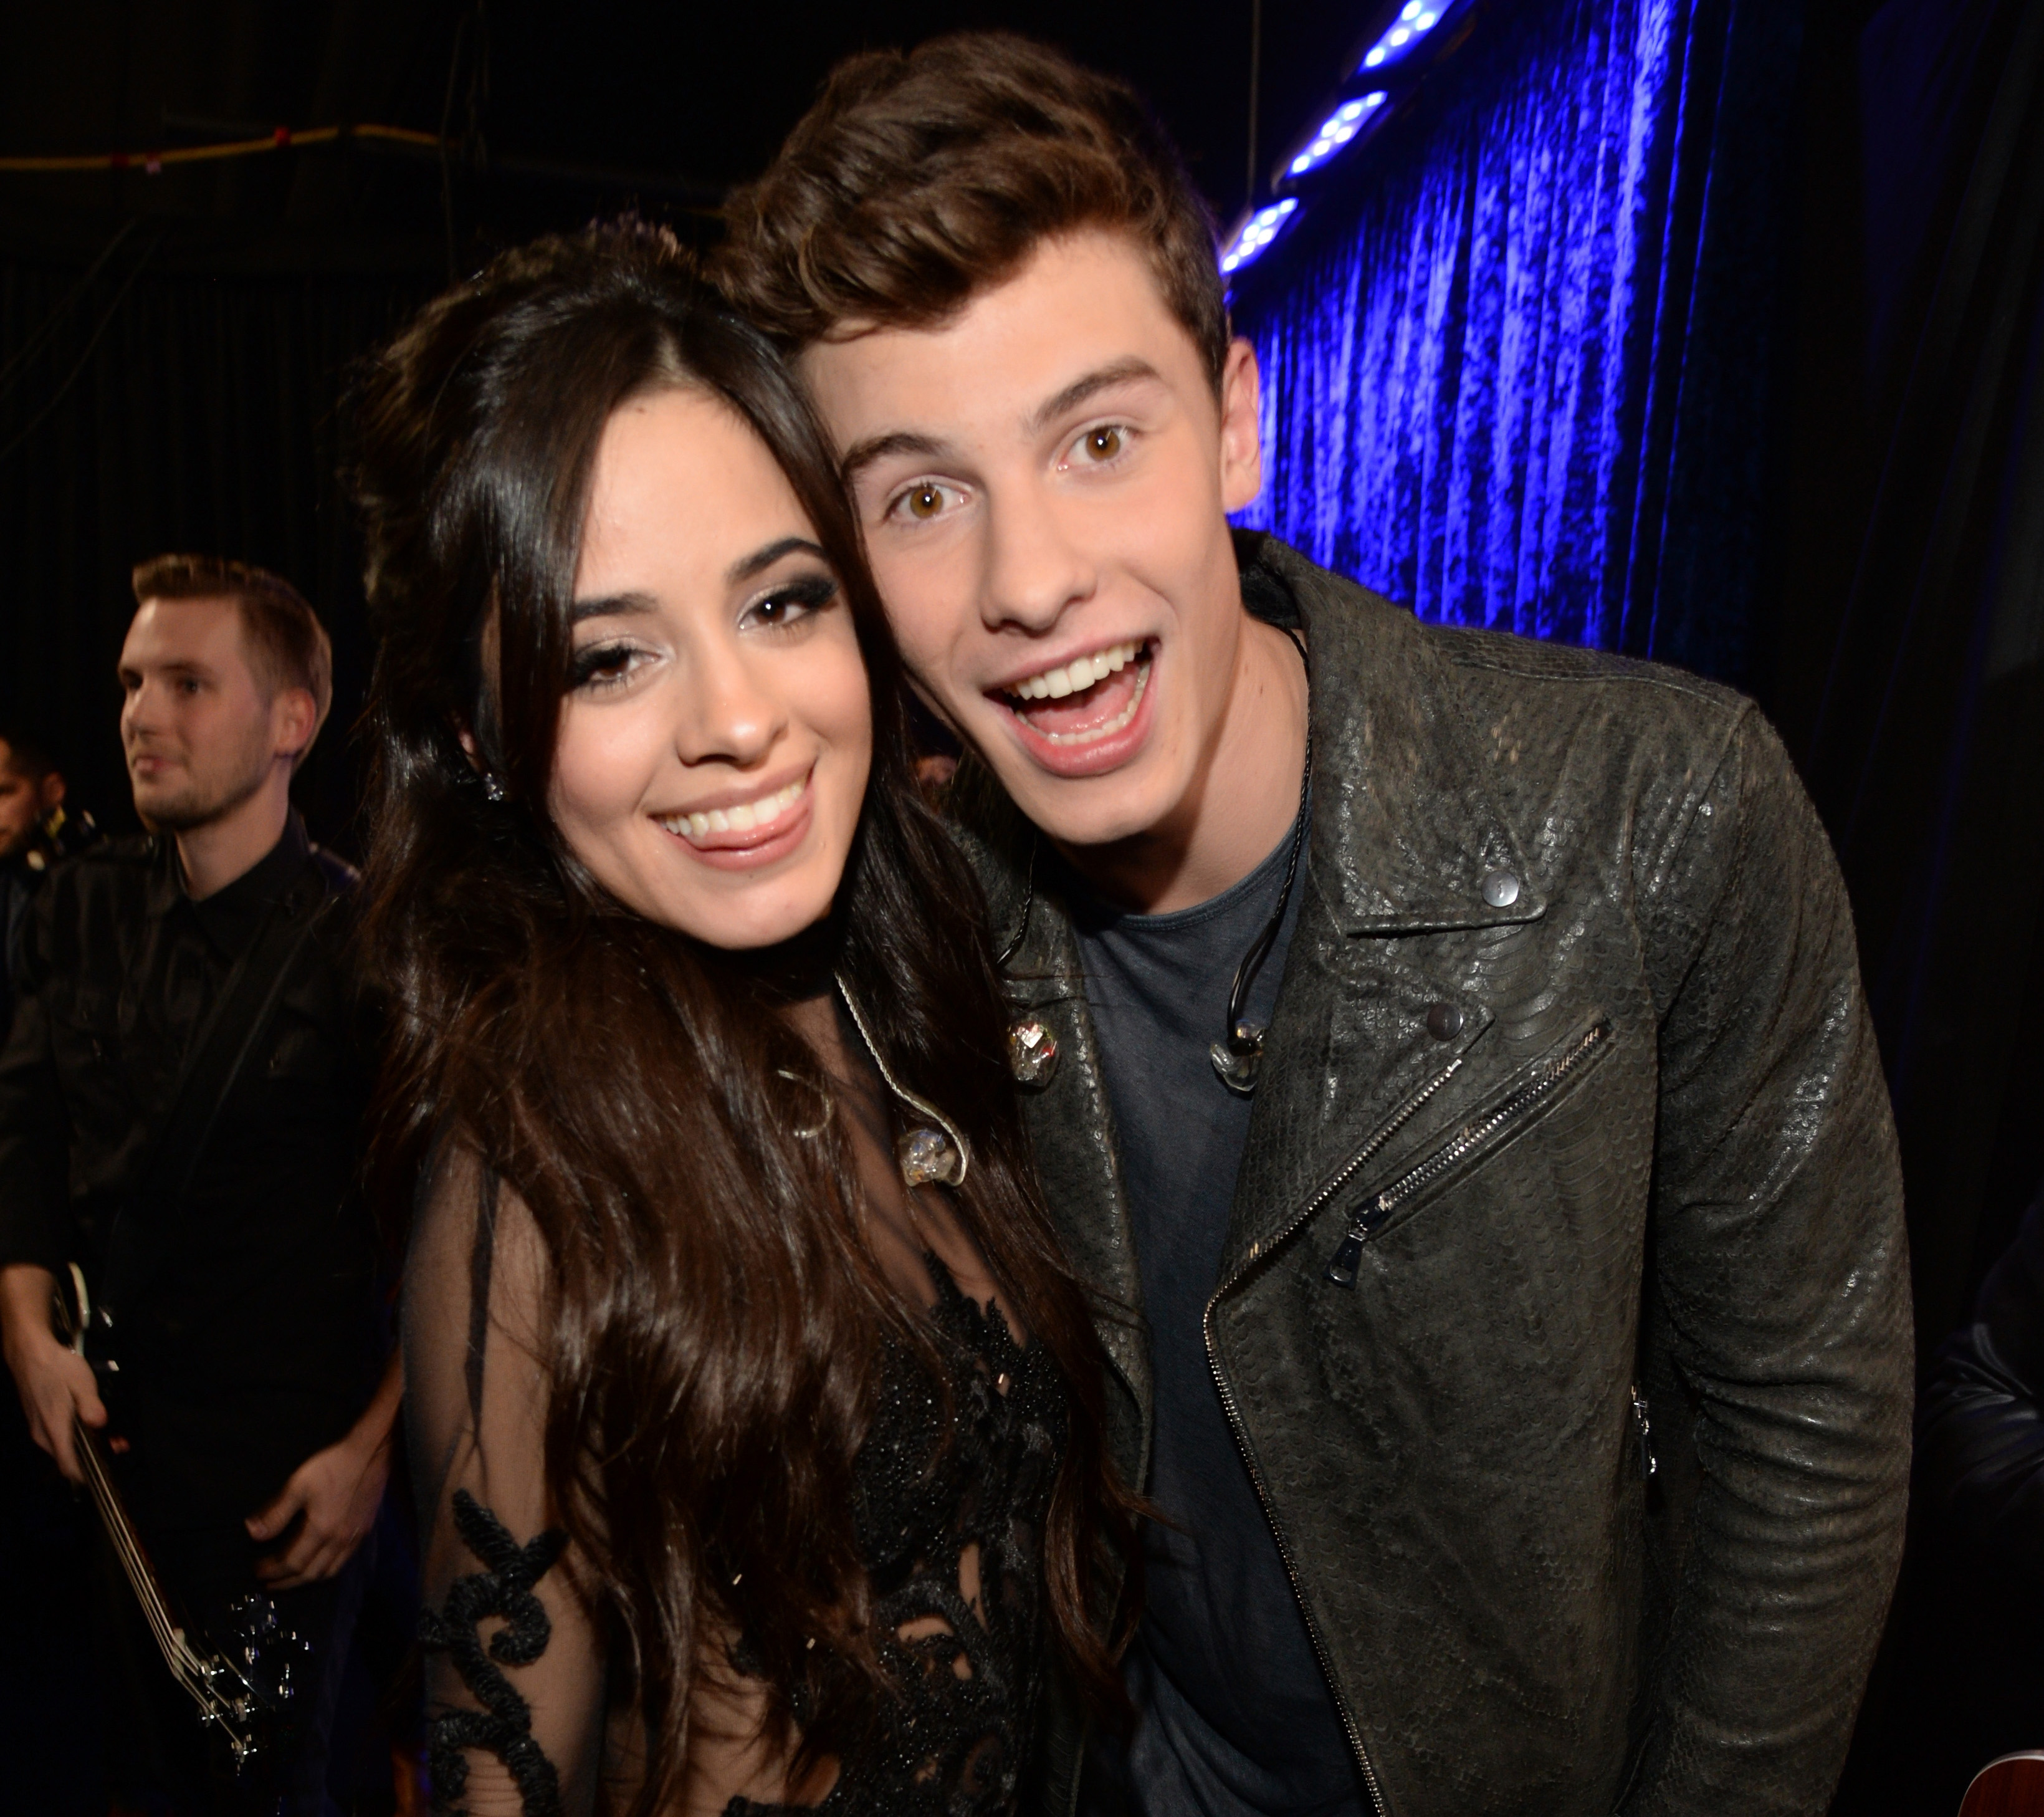 Camila and Shawn